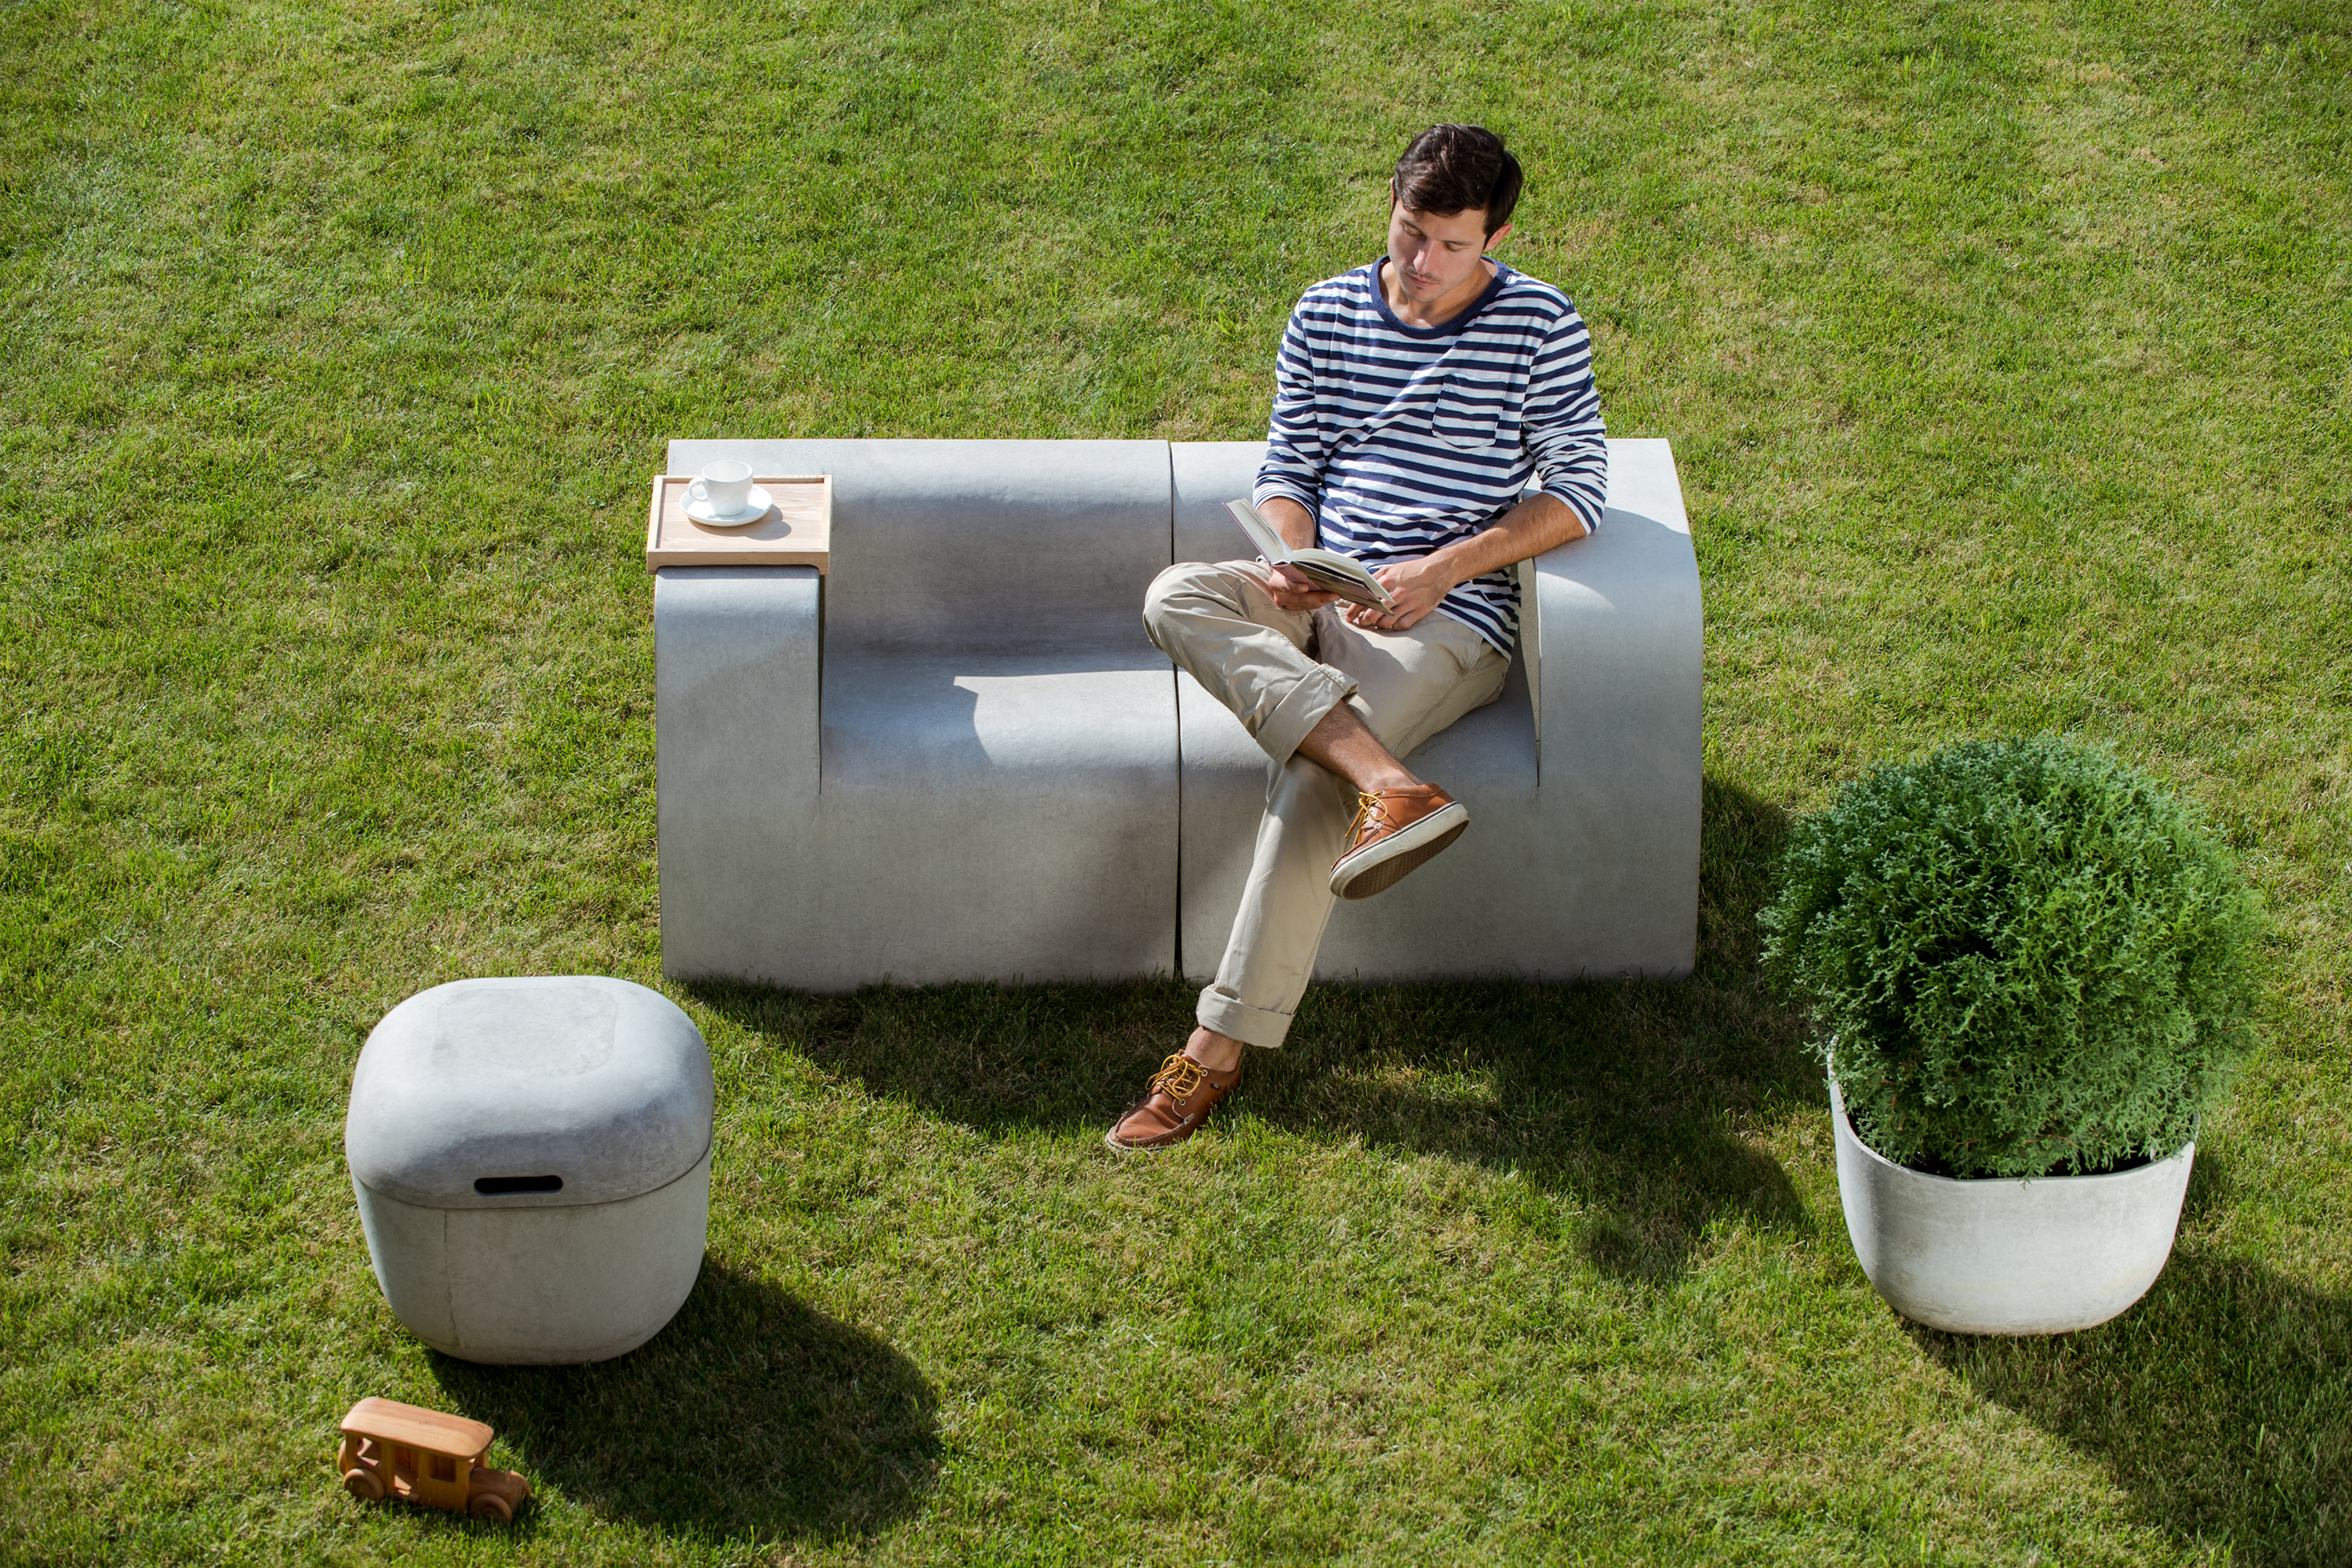 Concrete Garden - Seater R+L with Tray and Planter 4in1